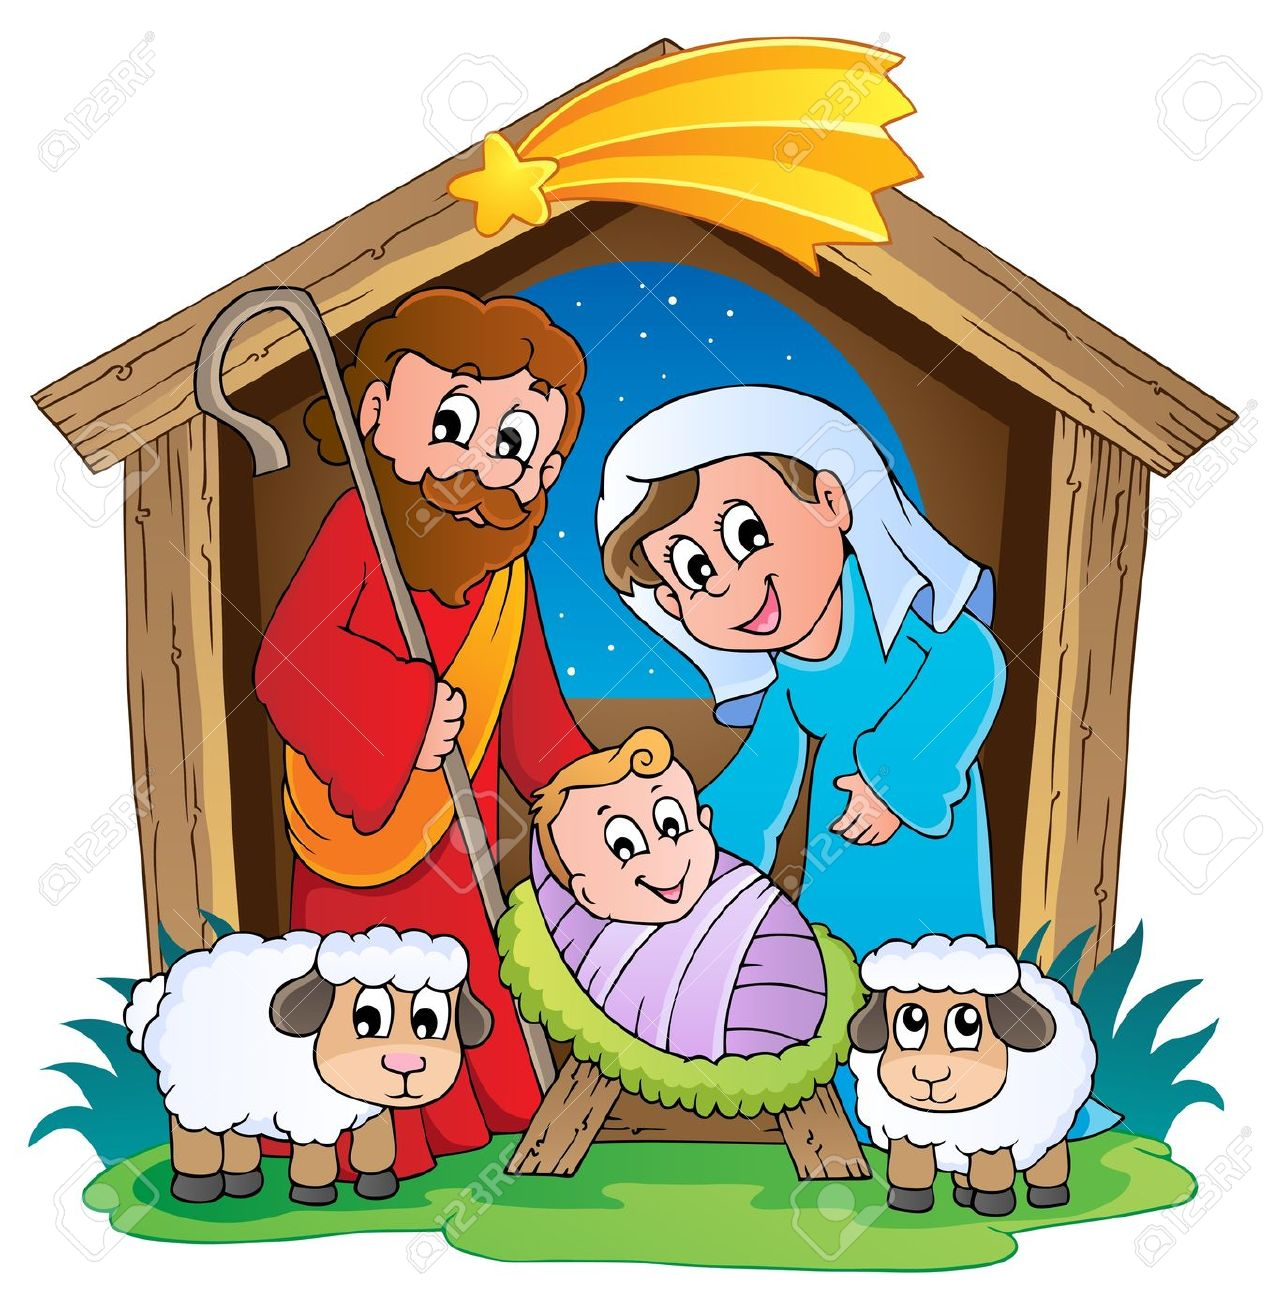 Clip Art of the Nativity.